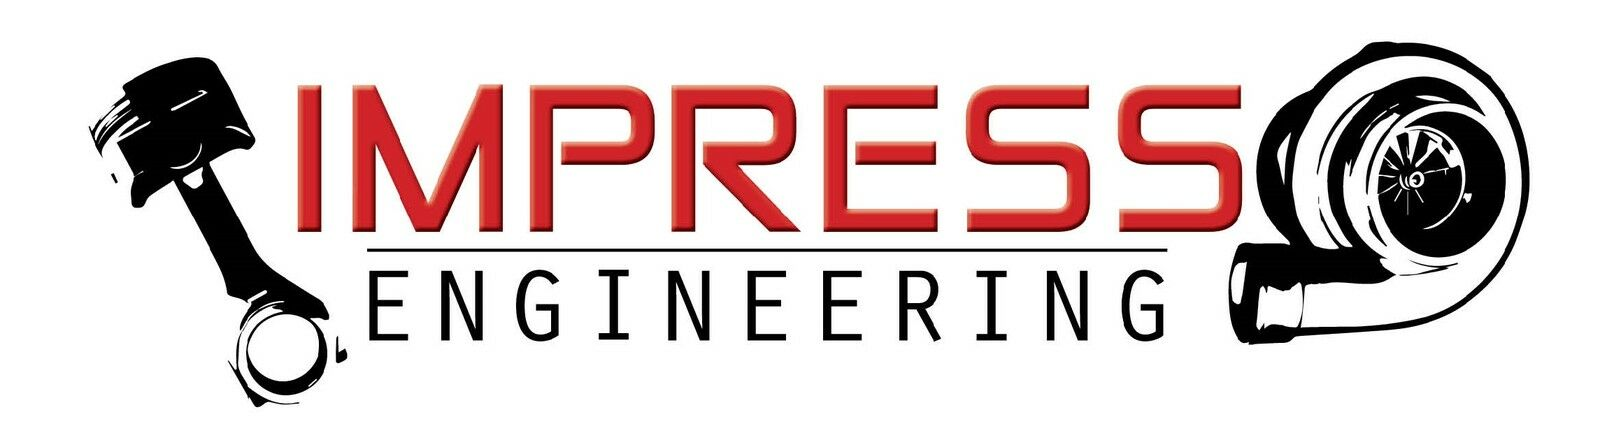 Impress_Engineering